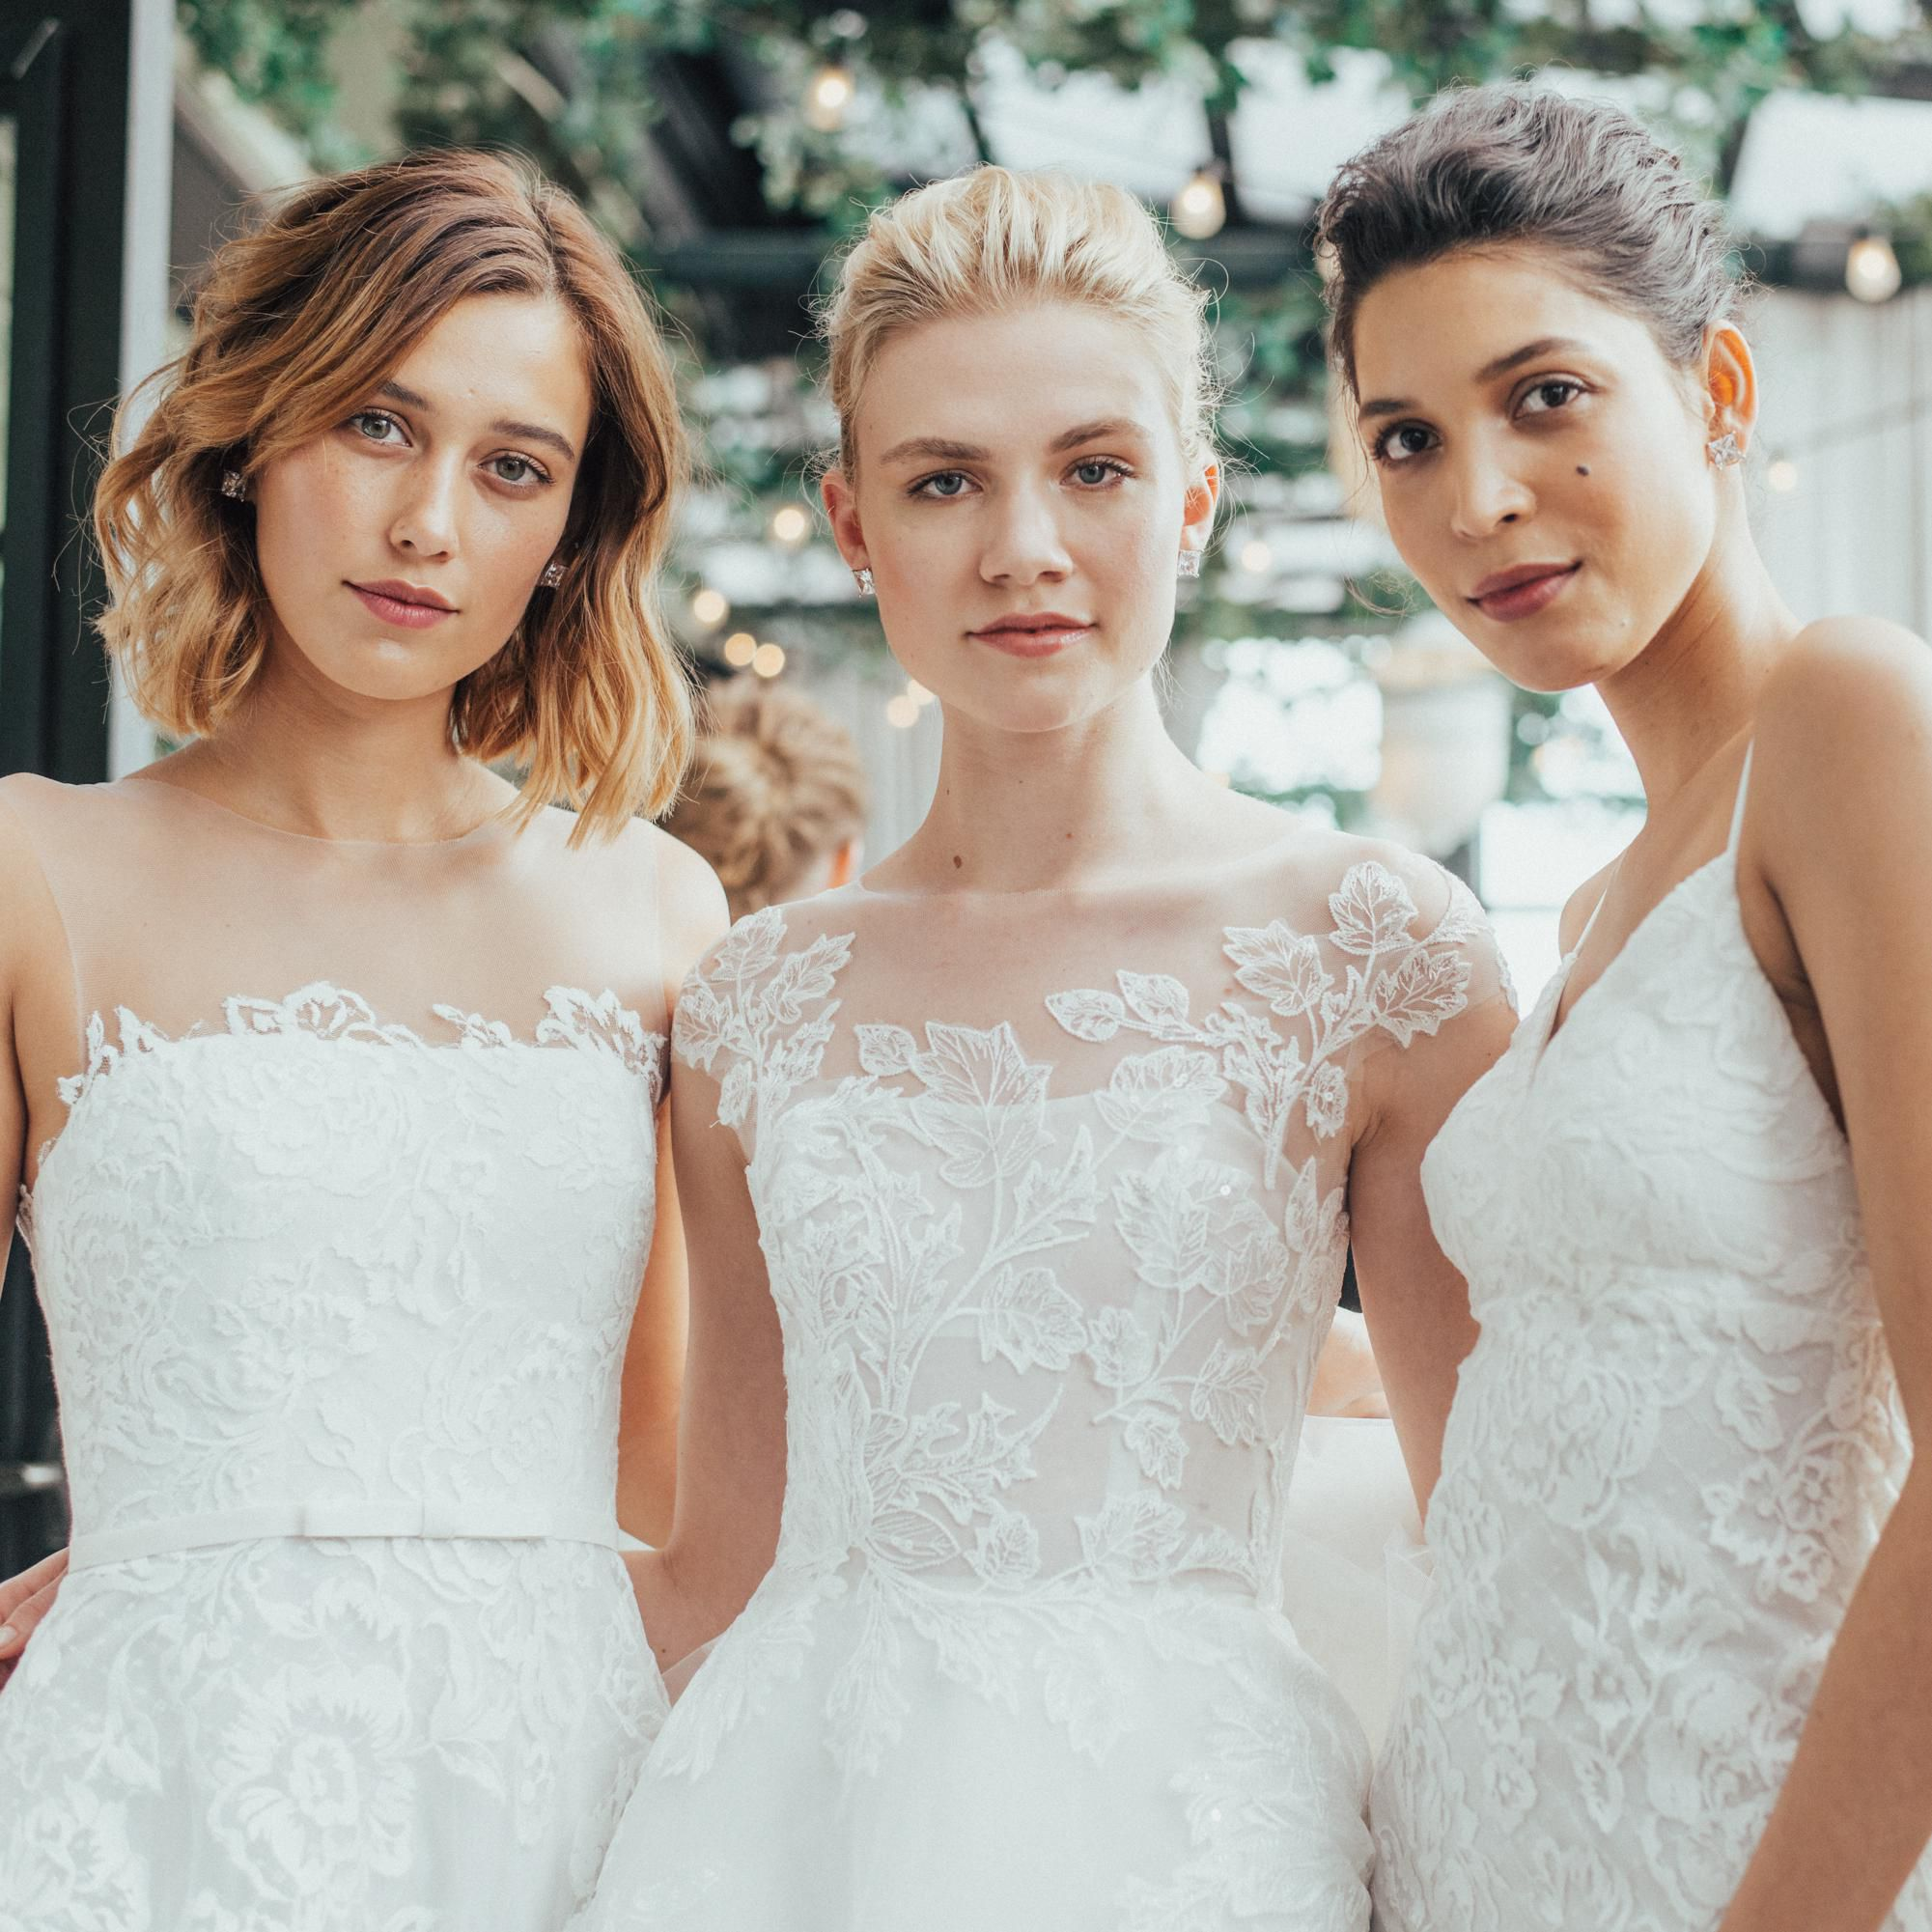 The Bridal Beauty Trends 2019 Brides Will Be Wearing Down The Aisle